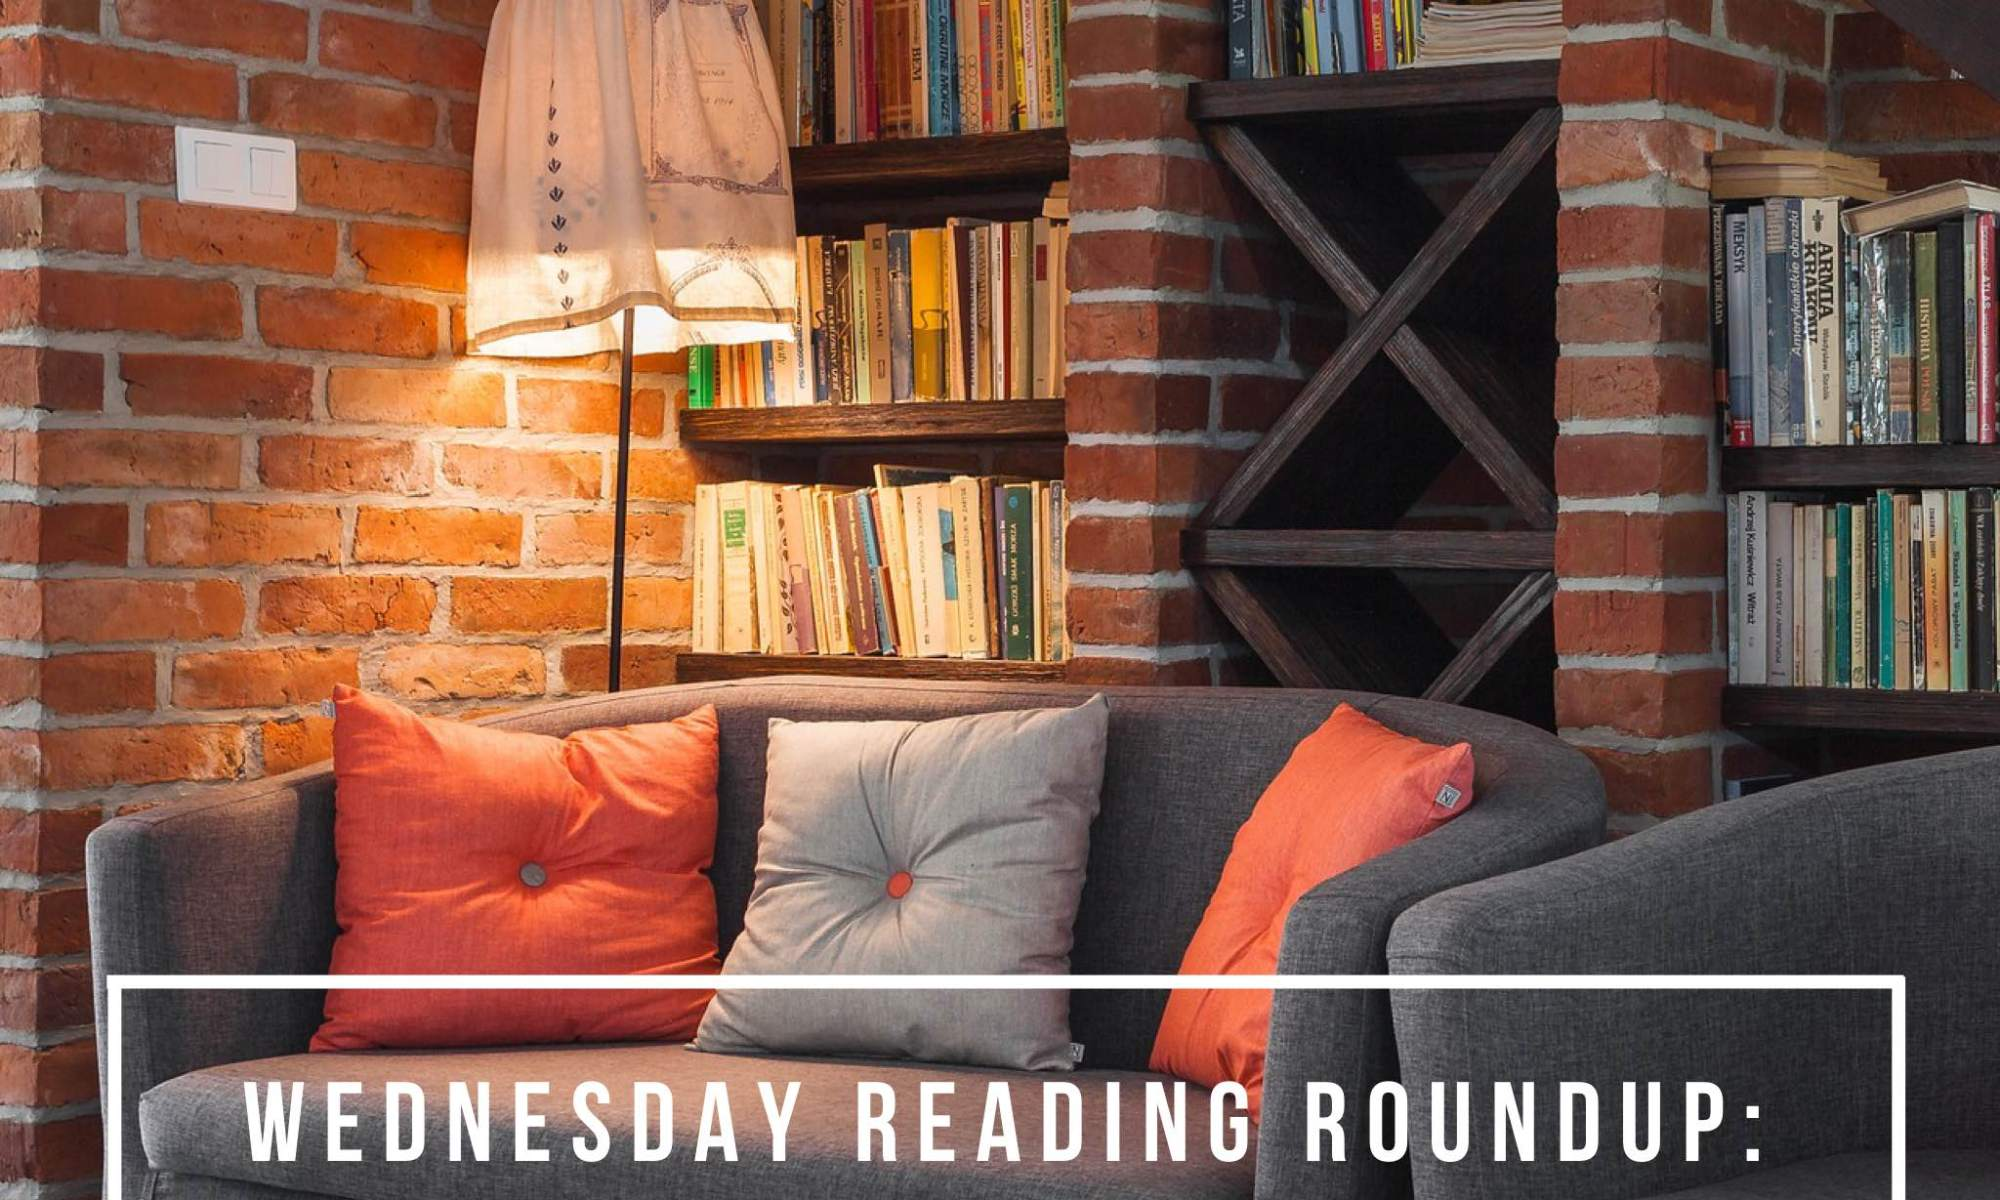 Another Wednesday, another opportunity to share my reading roundup, with thanks to Taking on a World of Words and Coffee and Cats for the inspiration!